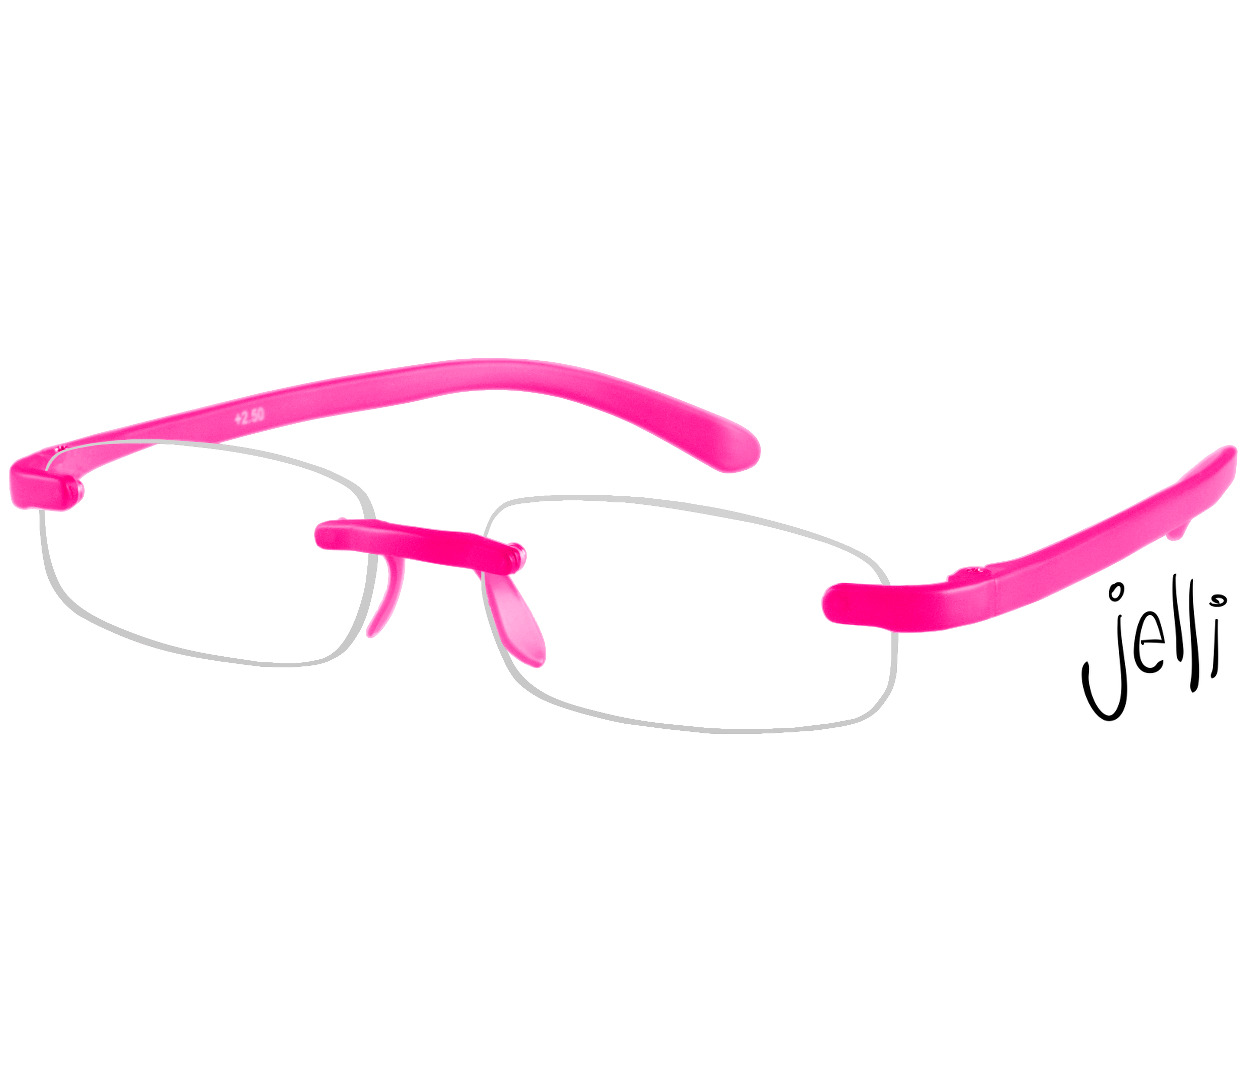 Main Image (Angle) - Jelli Neon (Pink) Rimless Reading Glasses